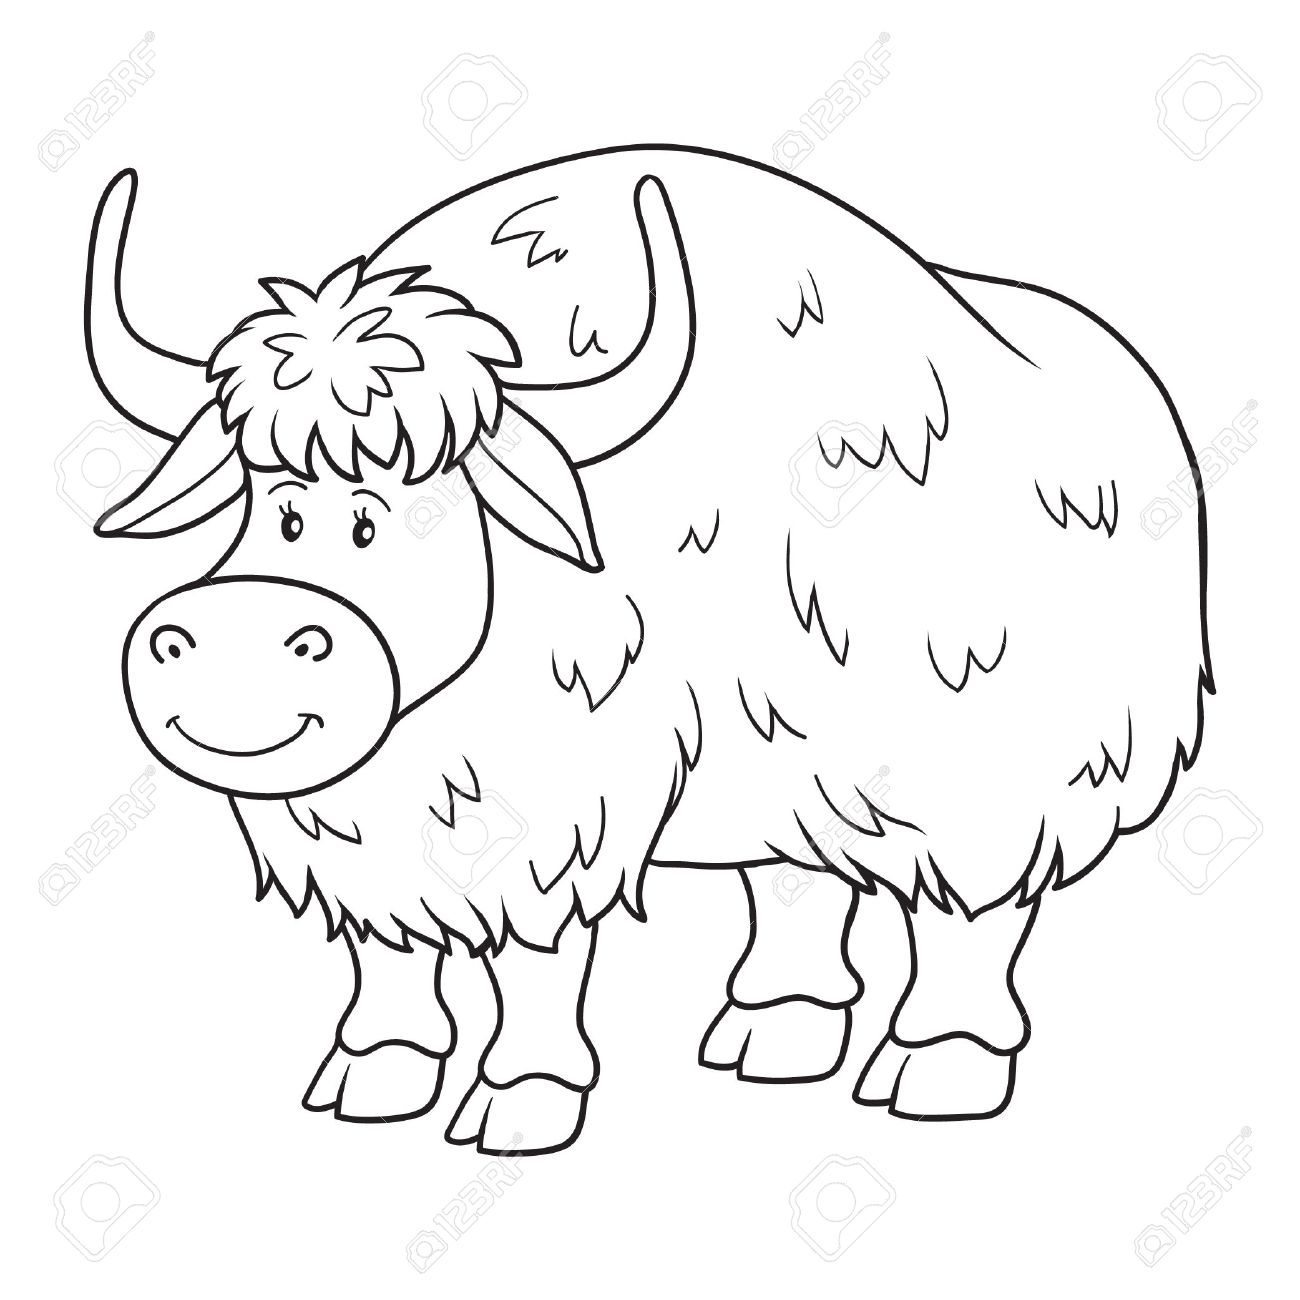 Coloring pages yak - Coloring Book Yak Stock Vector 37580255